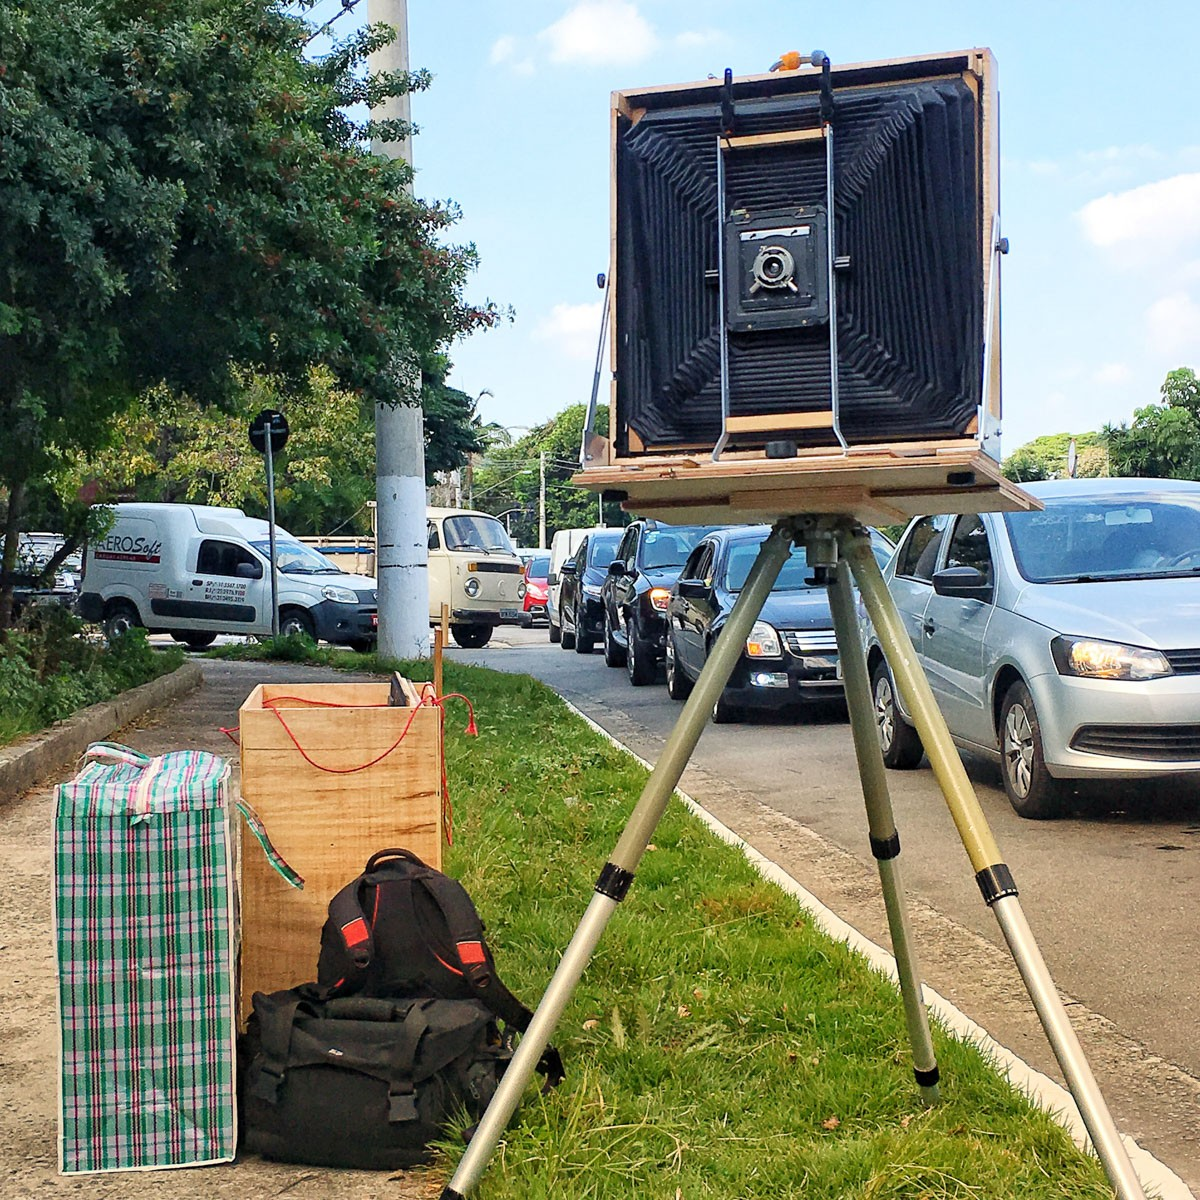 Camera setup to photograph gate in São Paulo. Protar 183mm installed, rear frame mounted forward position.